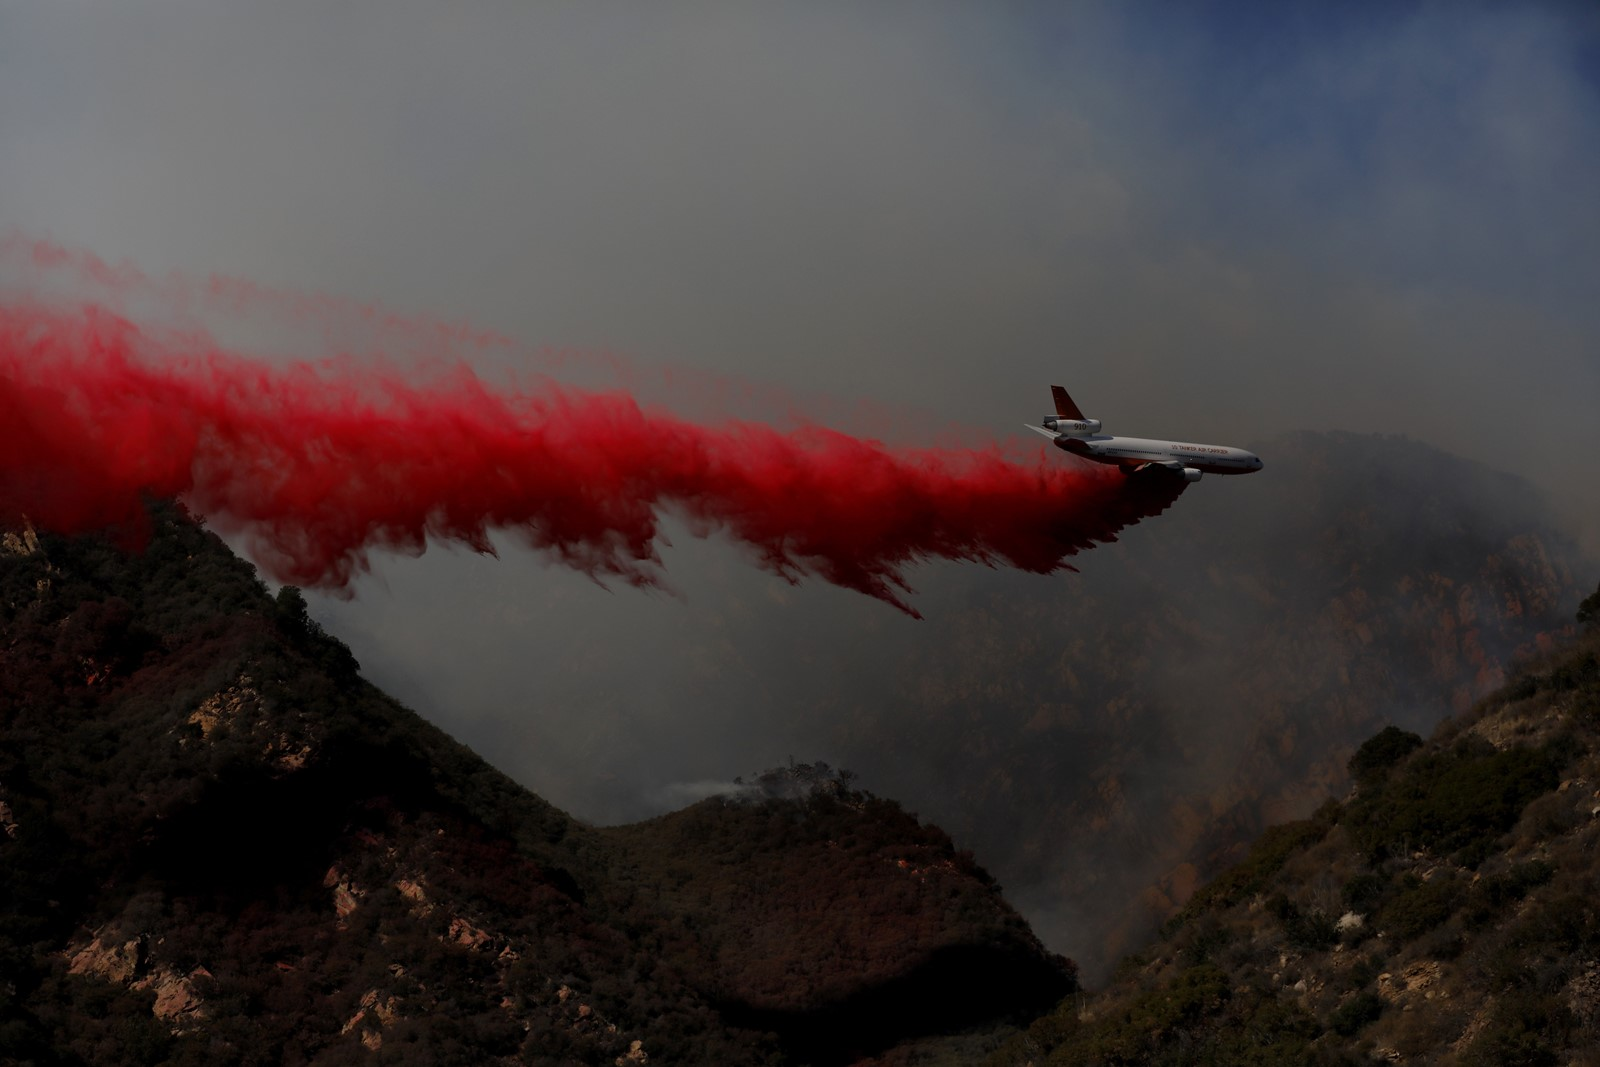 A DC-10 aircraft drops retardant over the Woolsey fire in the Santa Monica Mountains in southern California. — Photograph: Francine Orr/Los Angeles Times.